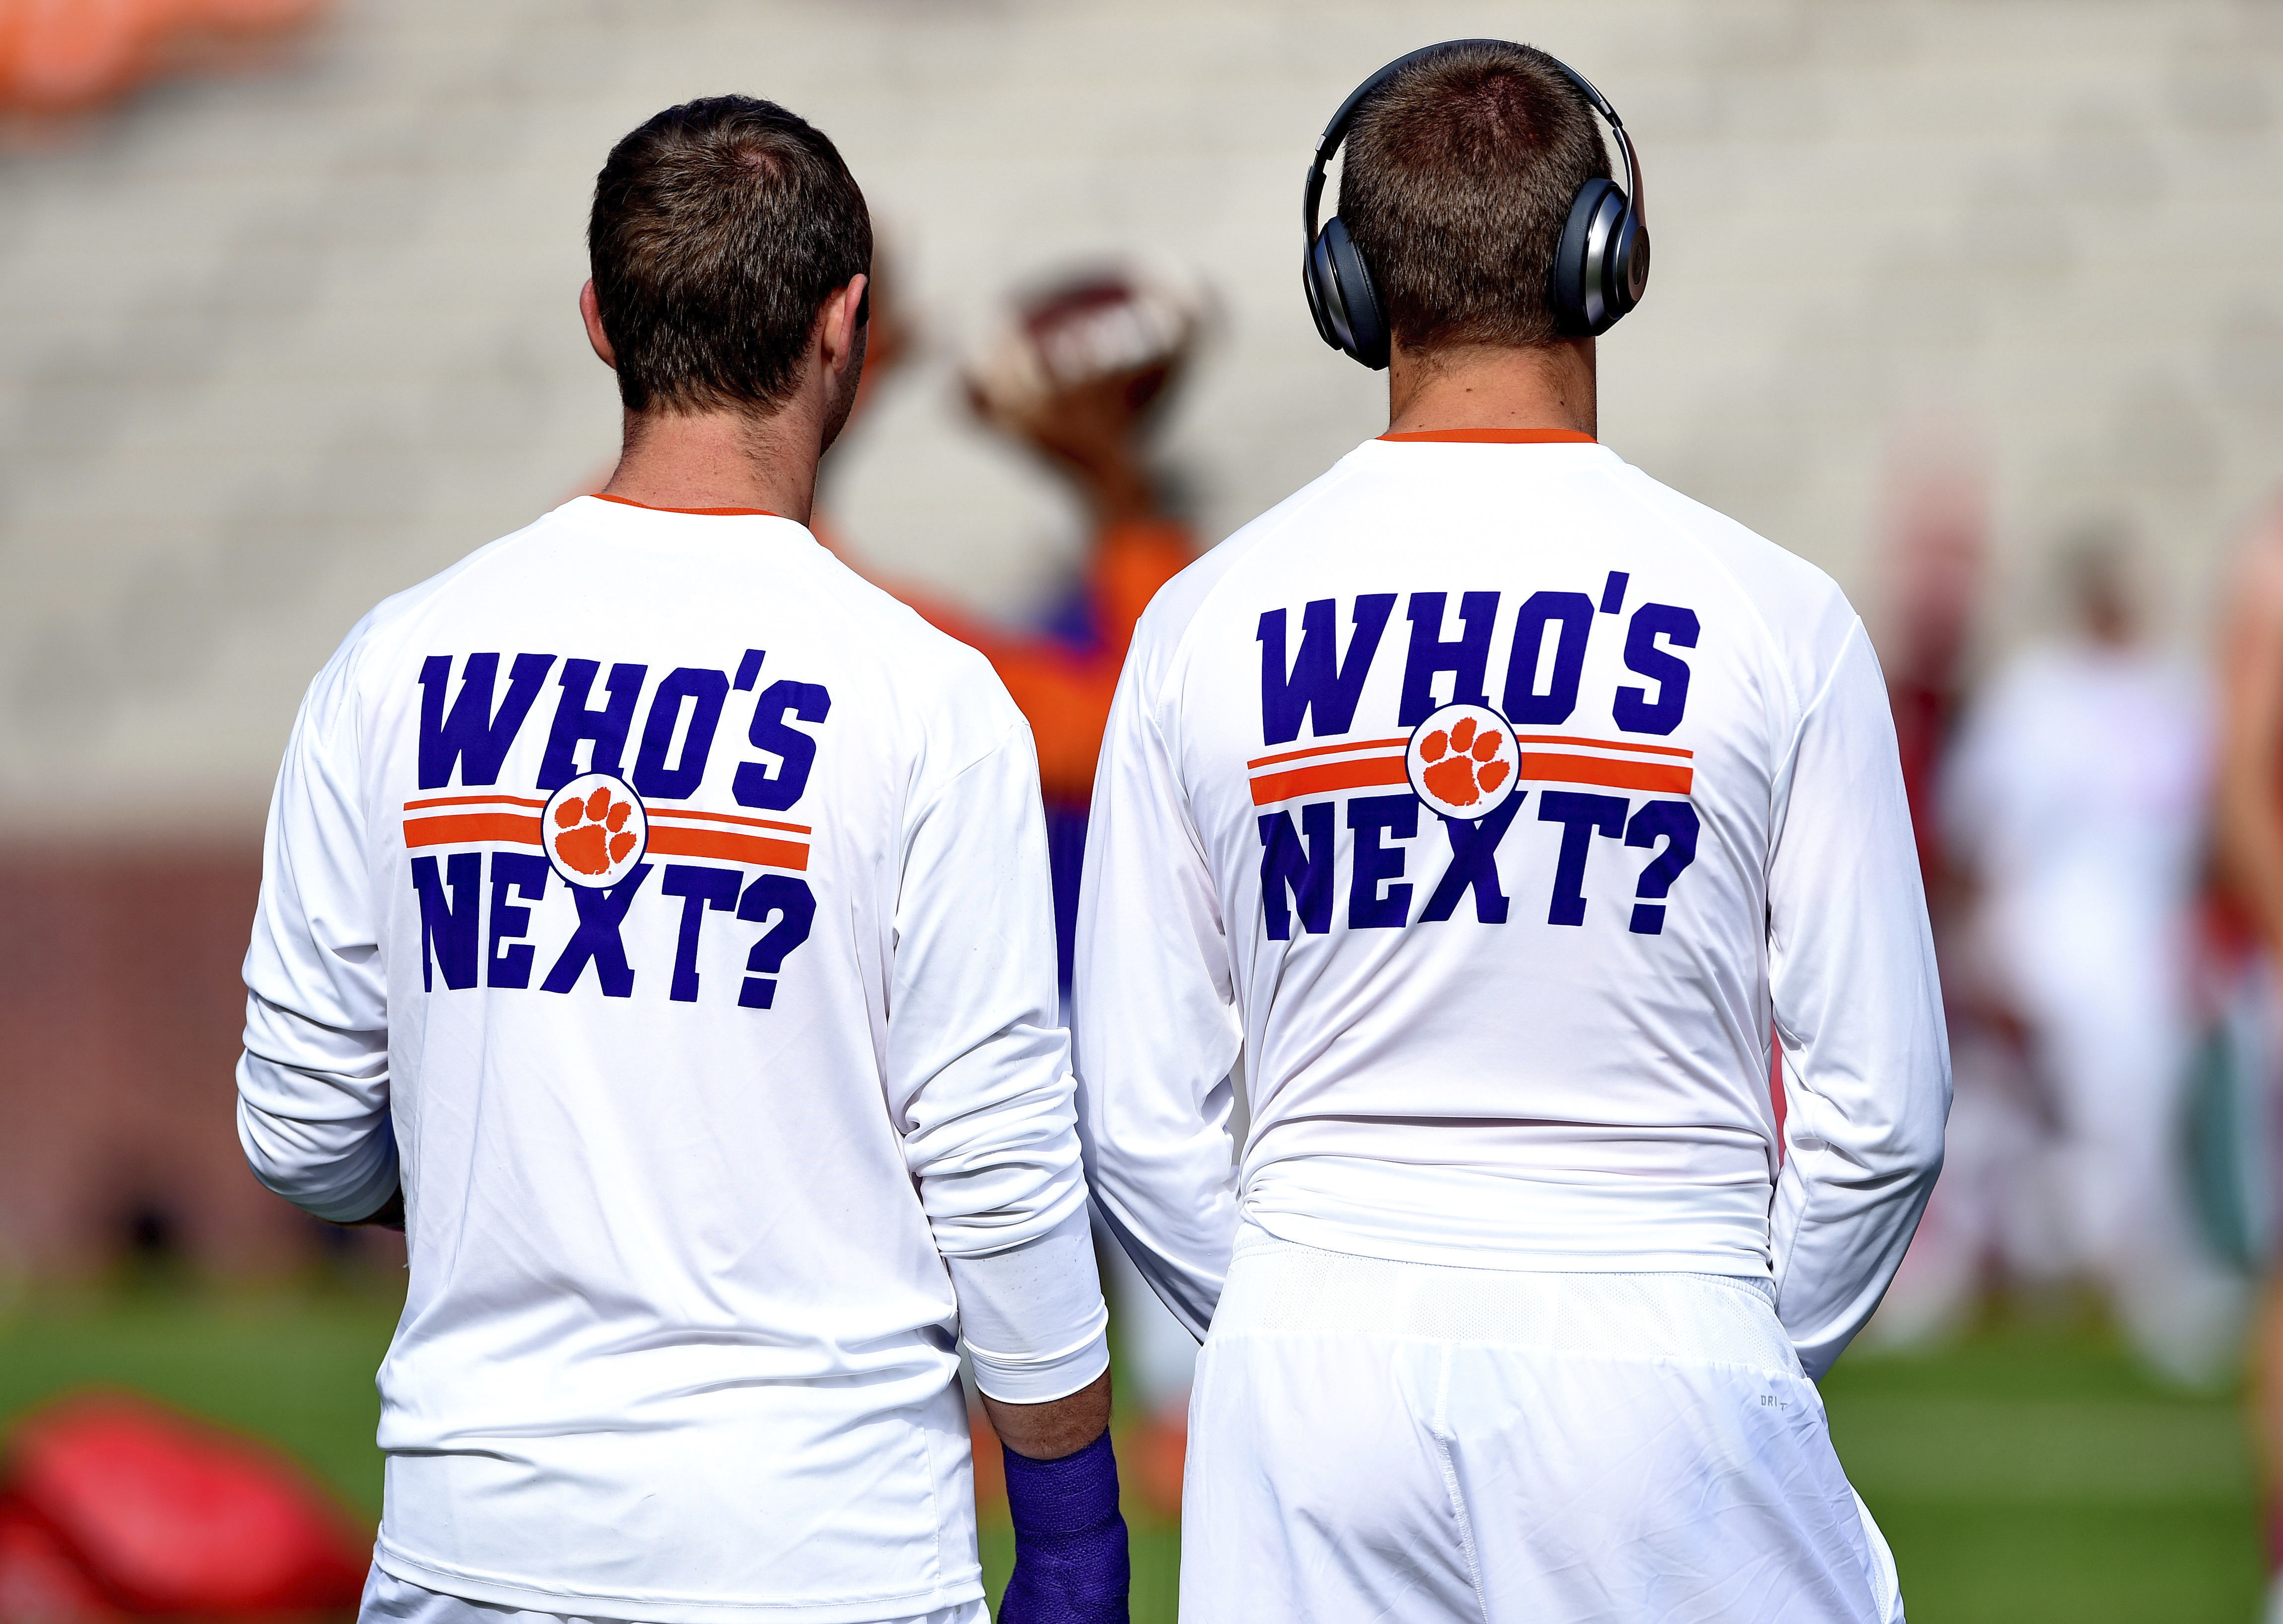 Clemson players watch drills before the start of an NCAA college football game against North Carolina State Saturday, Oct. 15, 2016, in Clemson, S.C. (AP Photo/Richard Shiro)